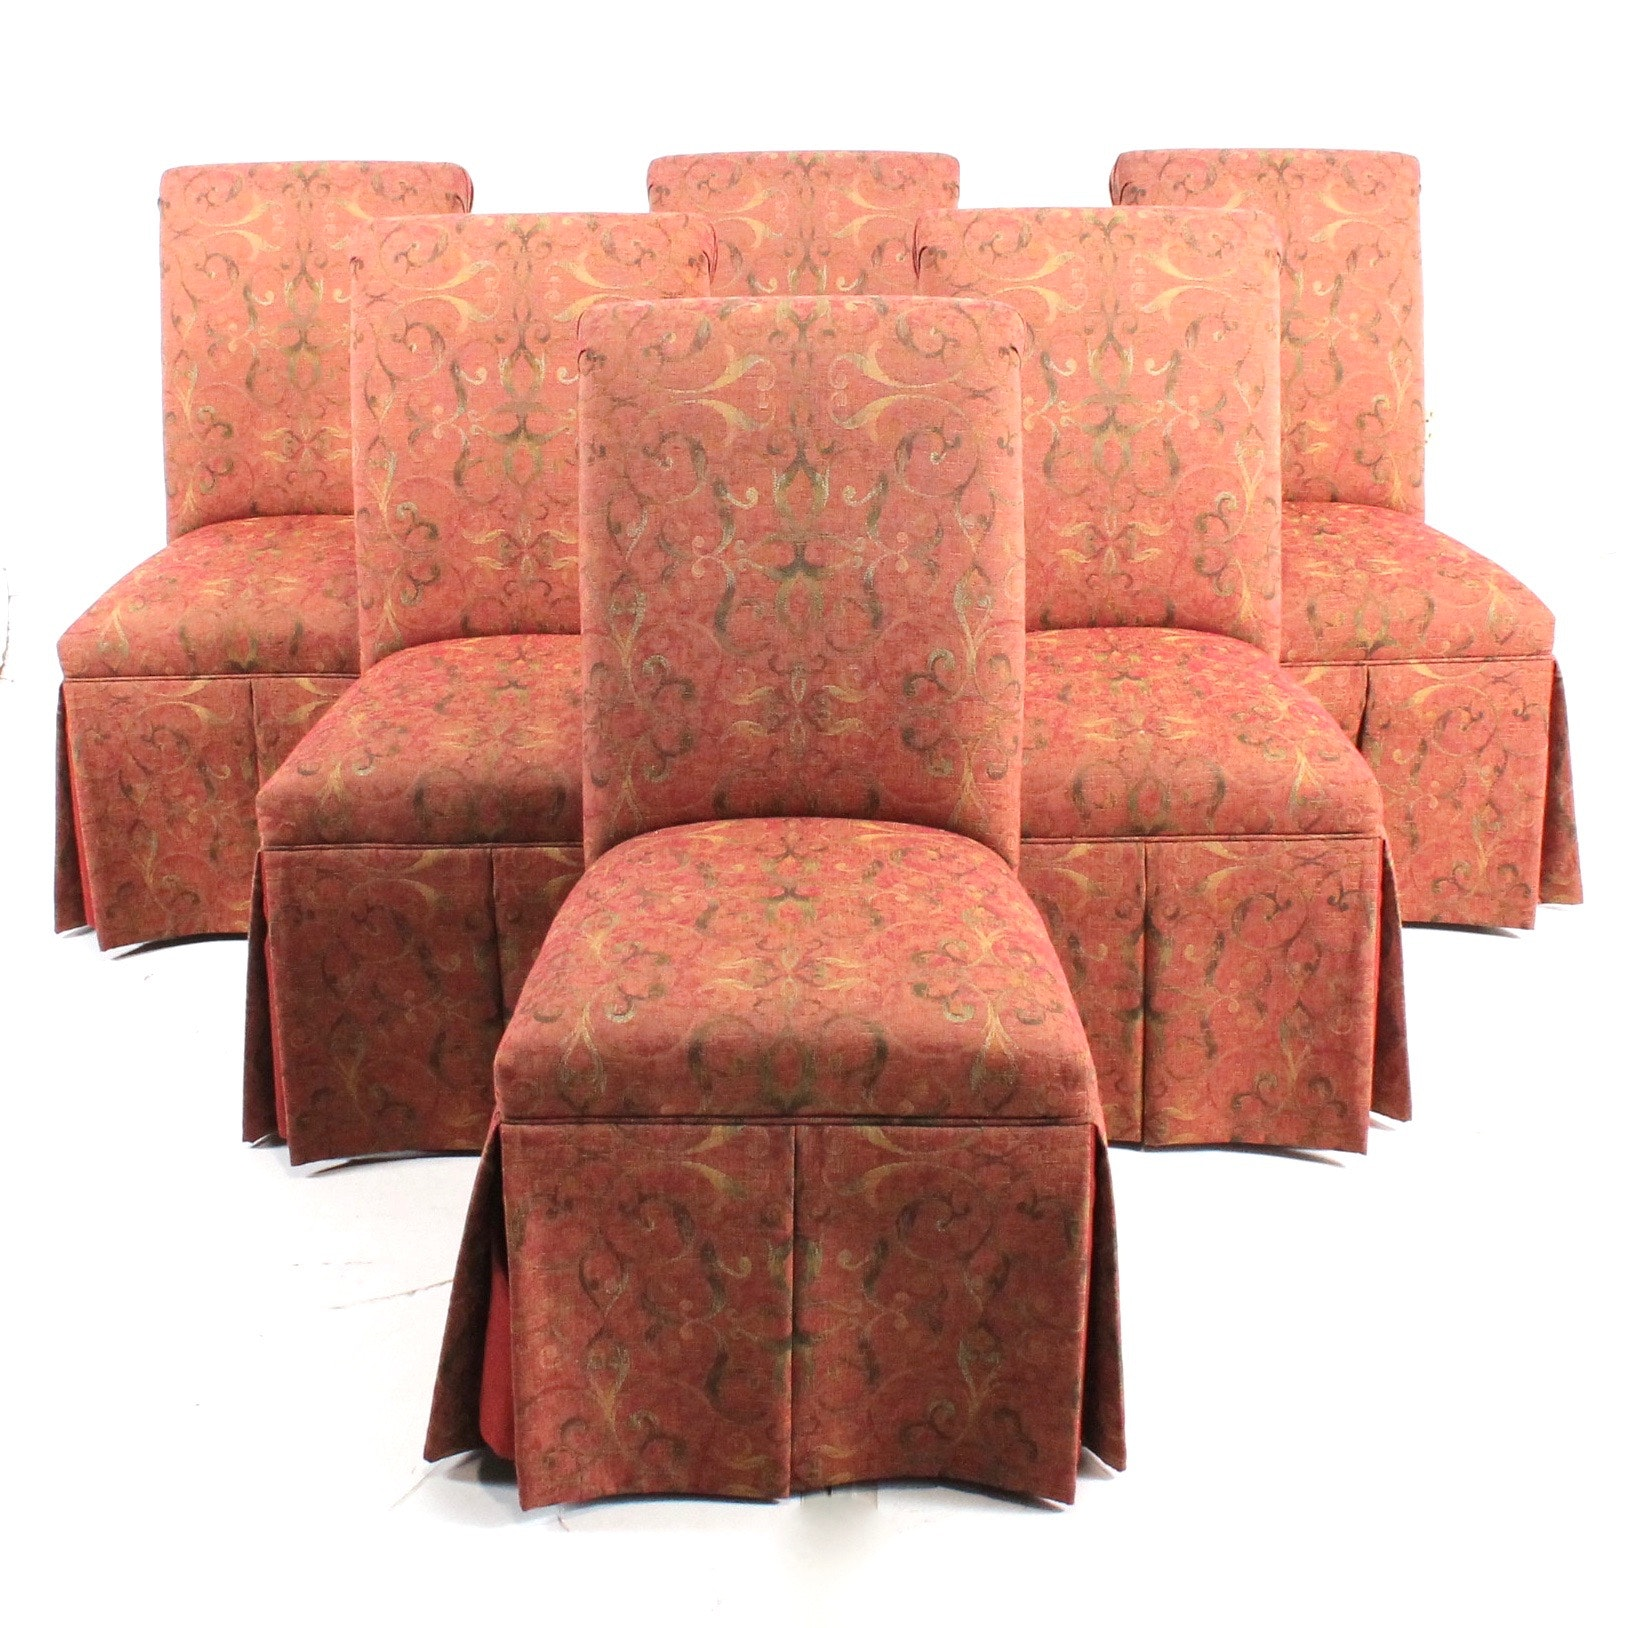 Upholstered Side Chairs